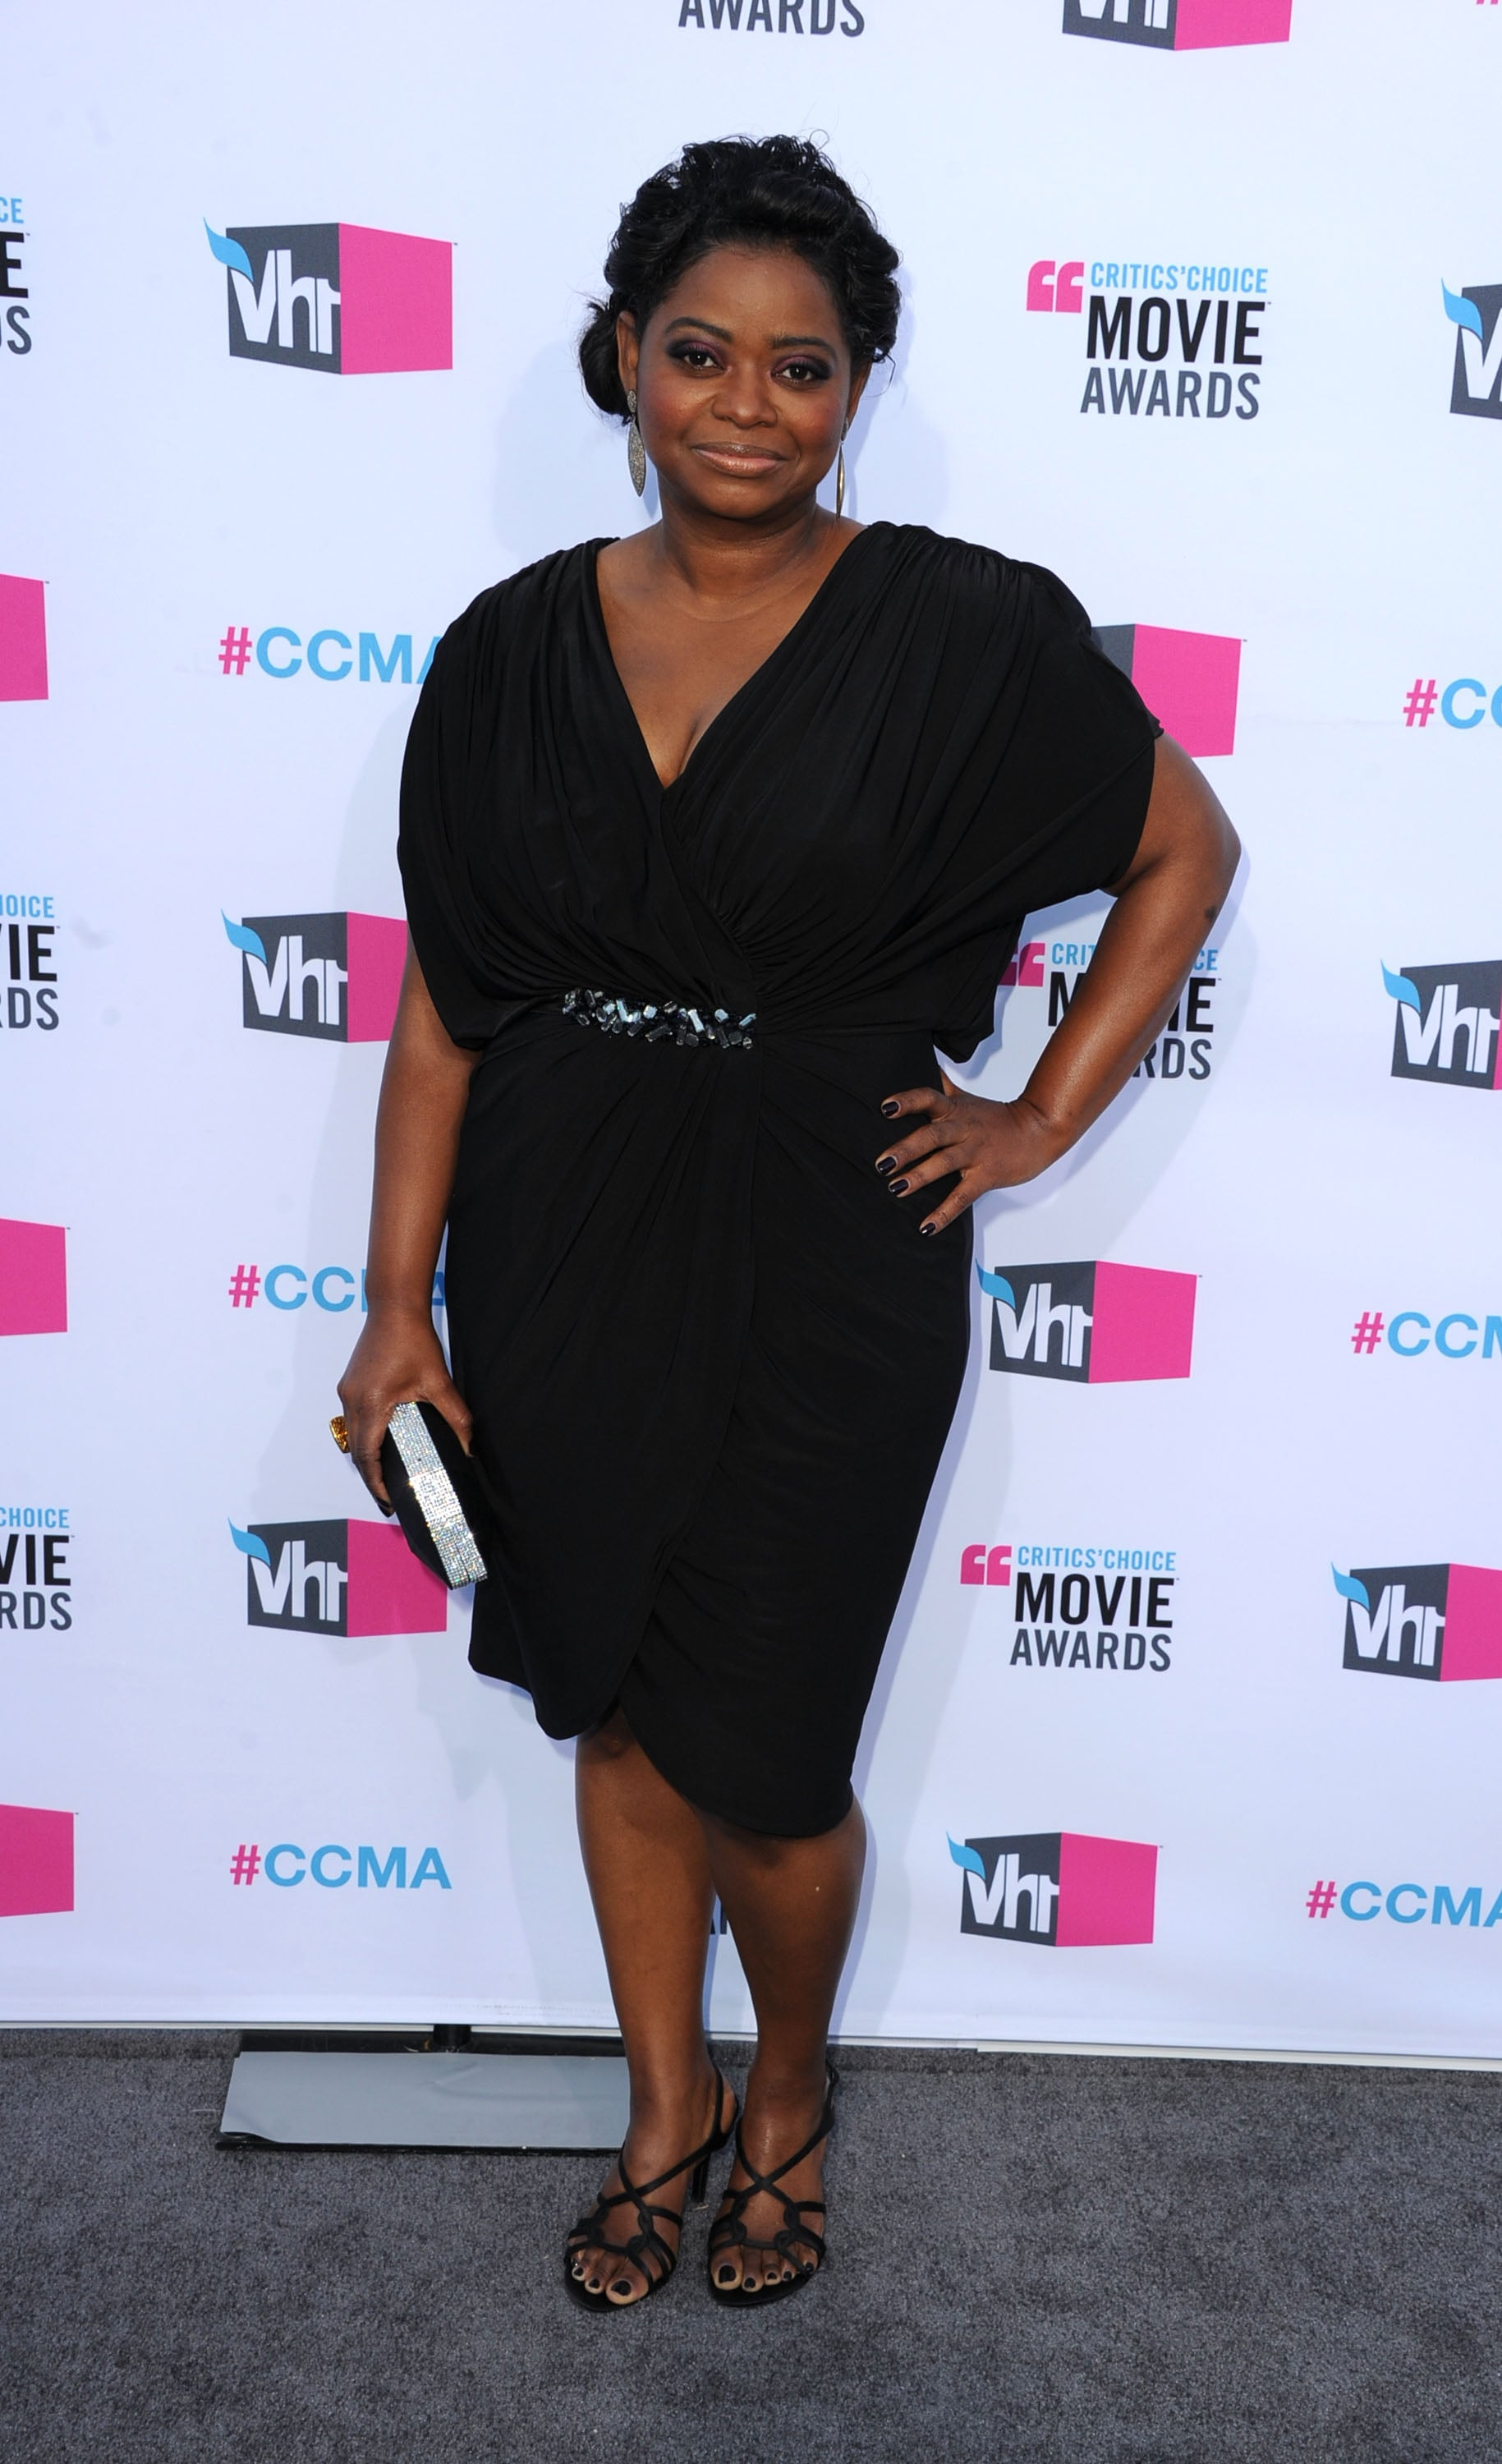 Octavia Spencer smiled on the gray carpet at the 2012 Critics' Choice Movie Awards.